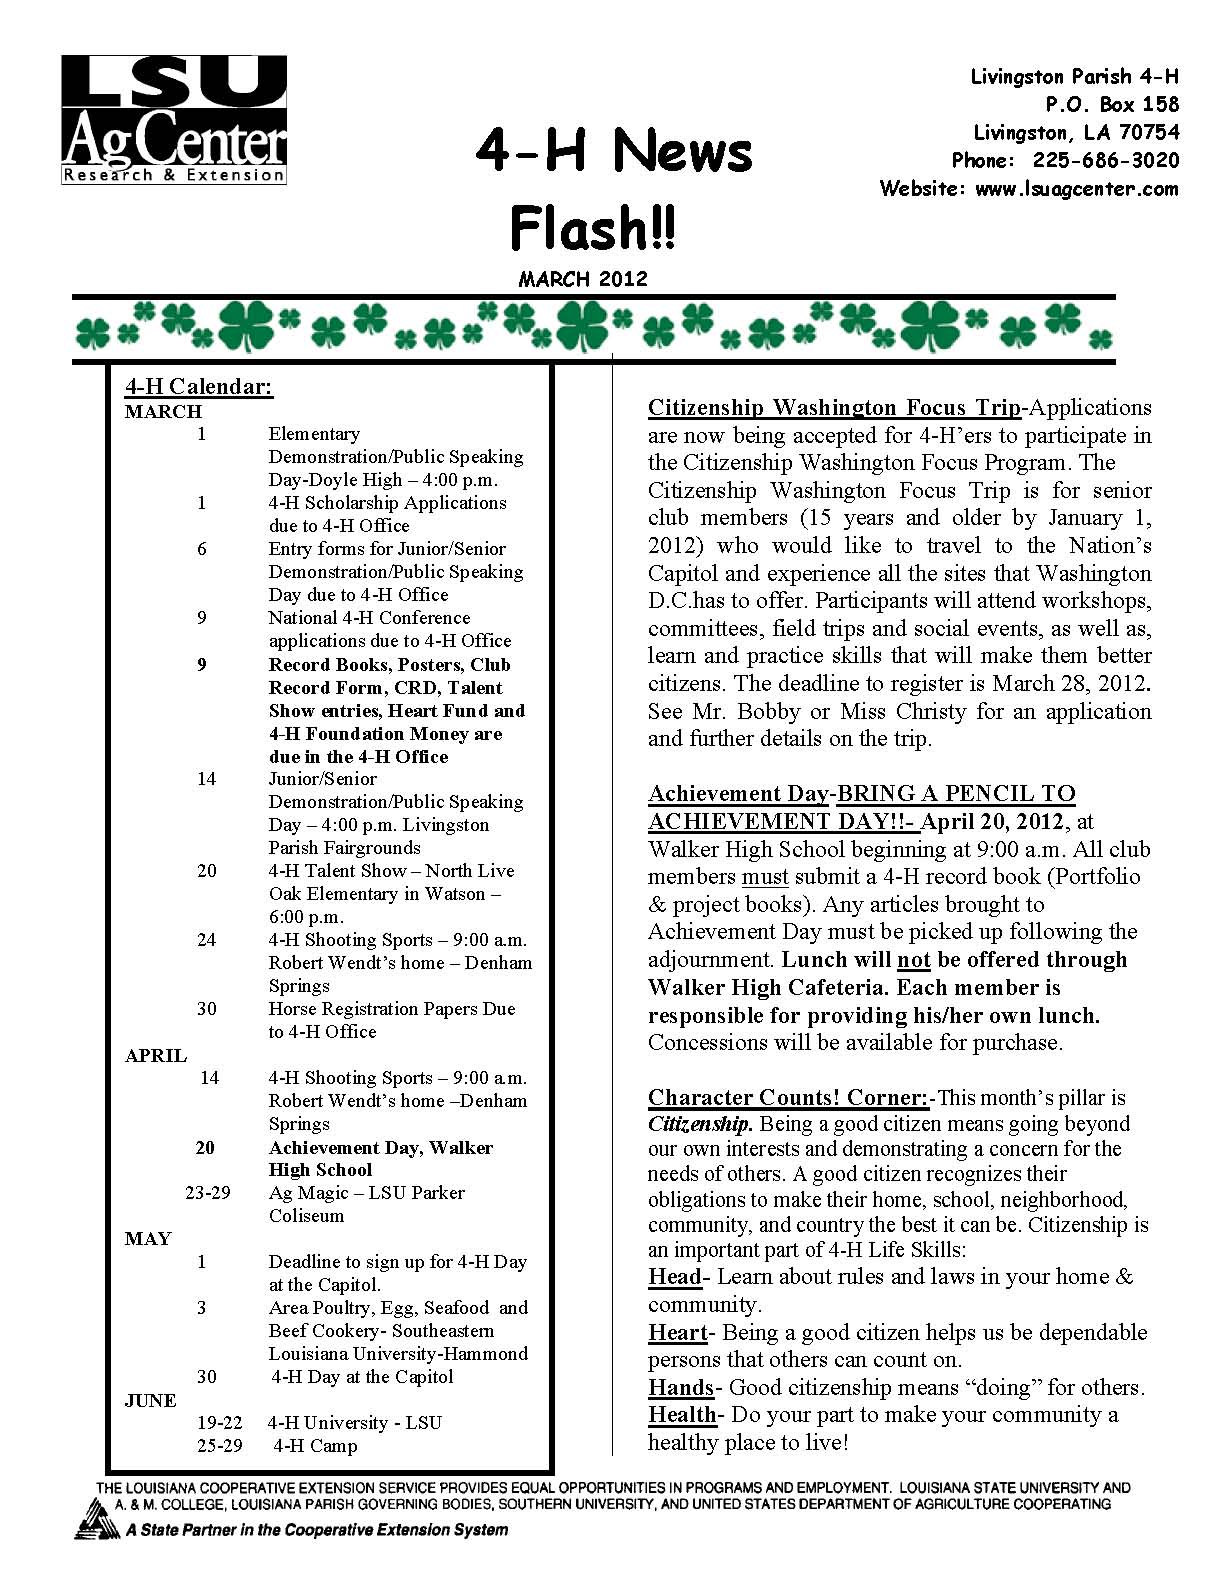 March 2012 4-H News Flash